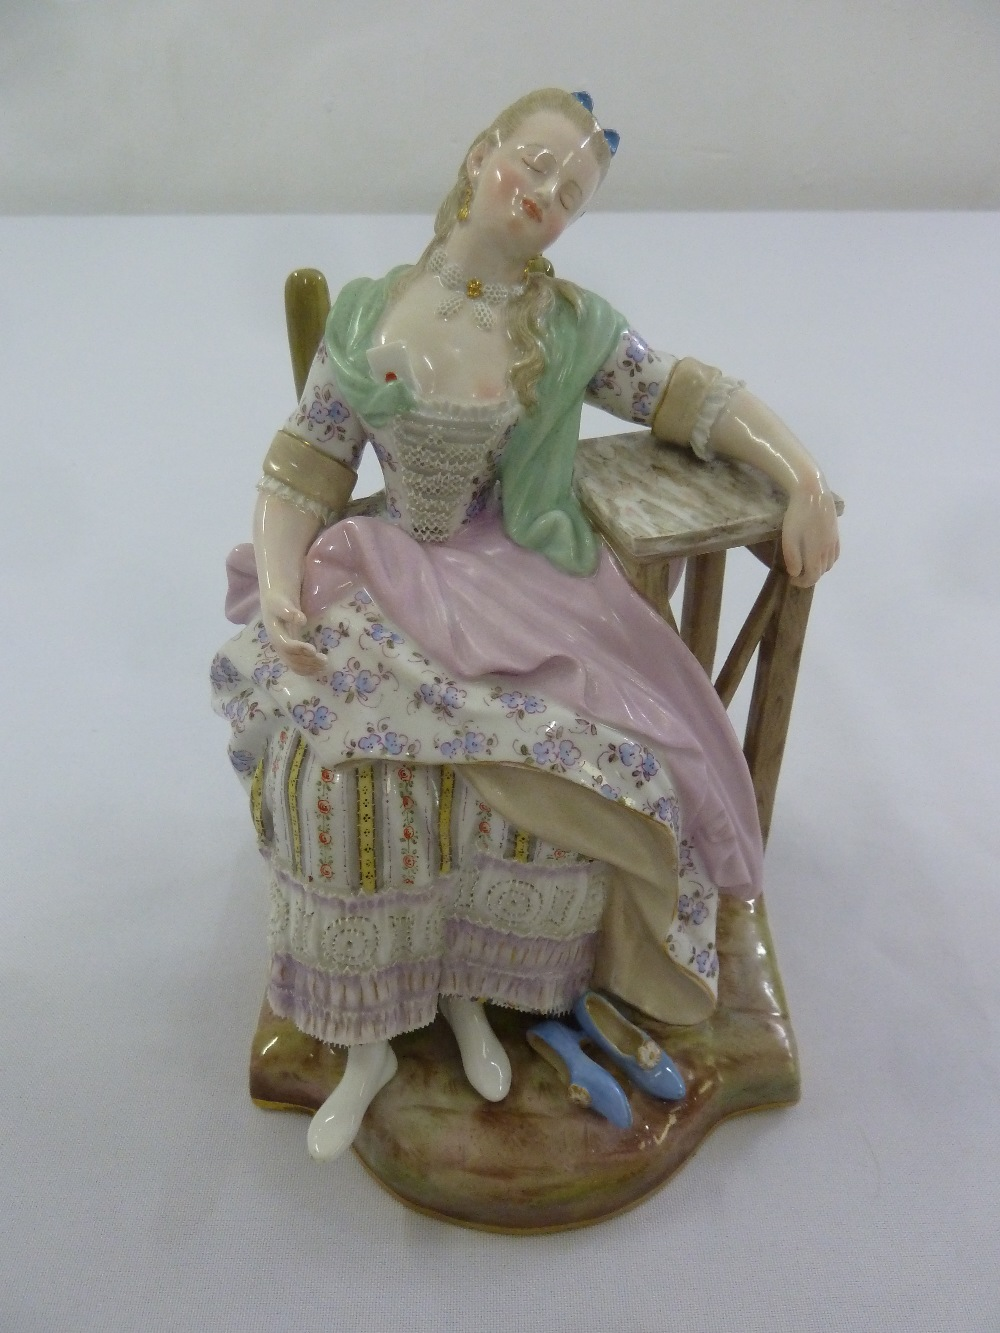 Lot 171 - Meissen 19th century figurine of a seated lady in 18th century attire, marks to the base, 18cm (h)